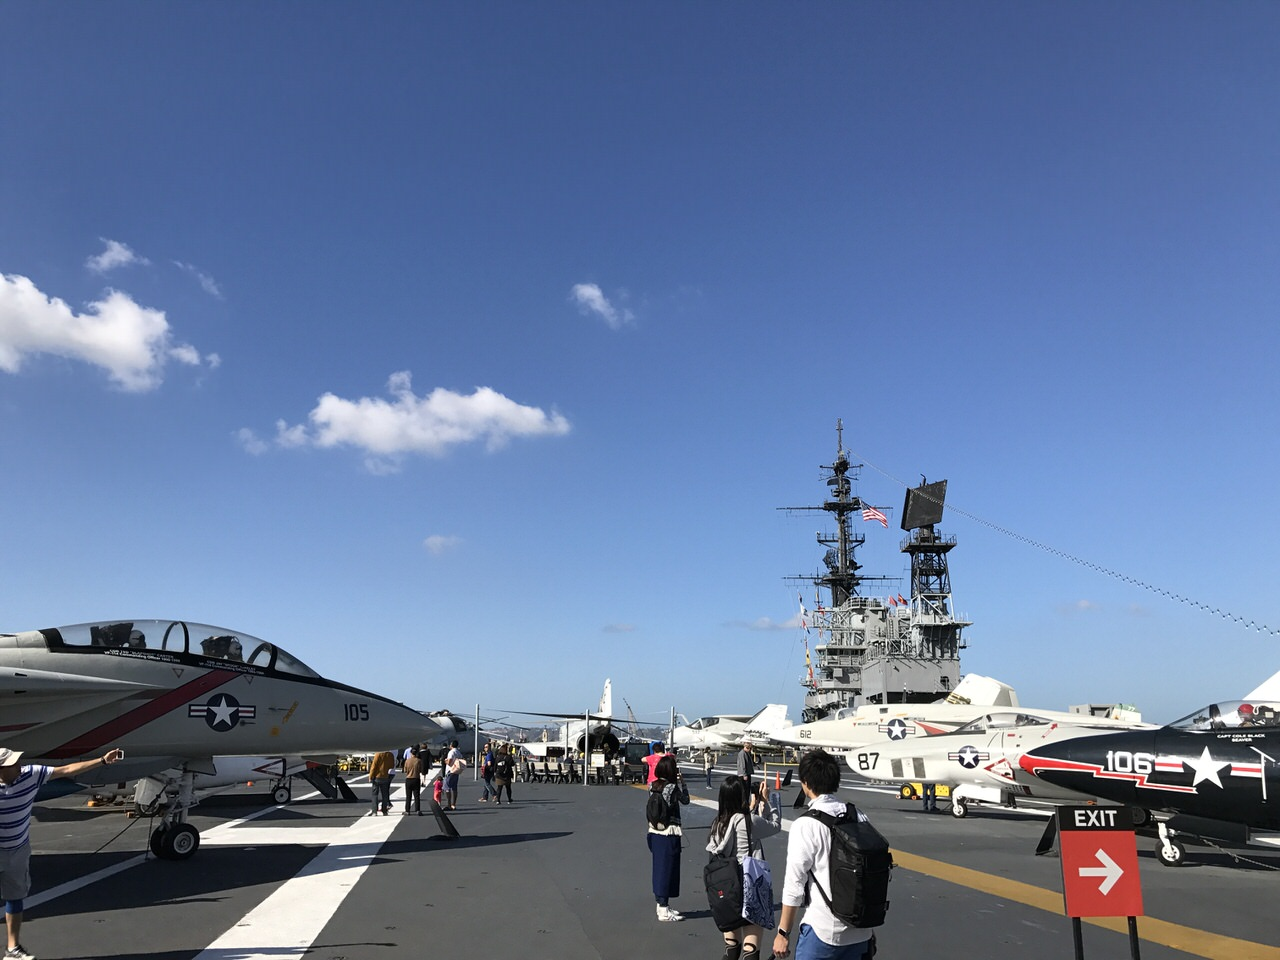 Uss midway museum 0565